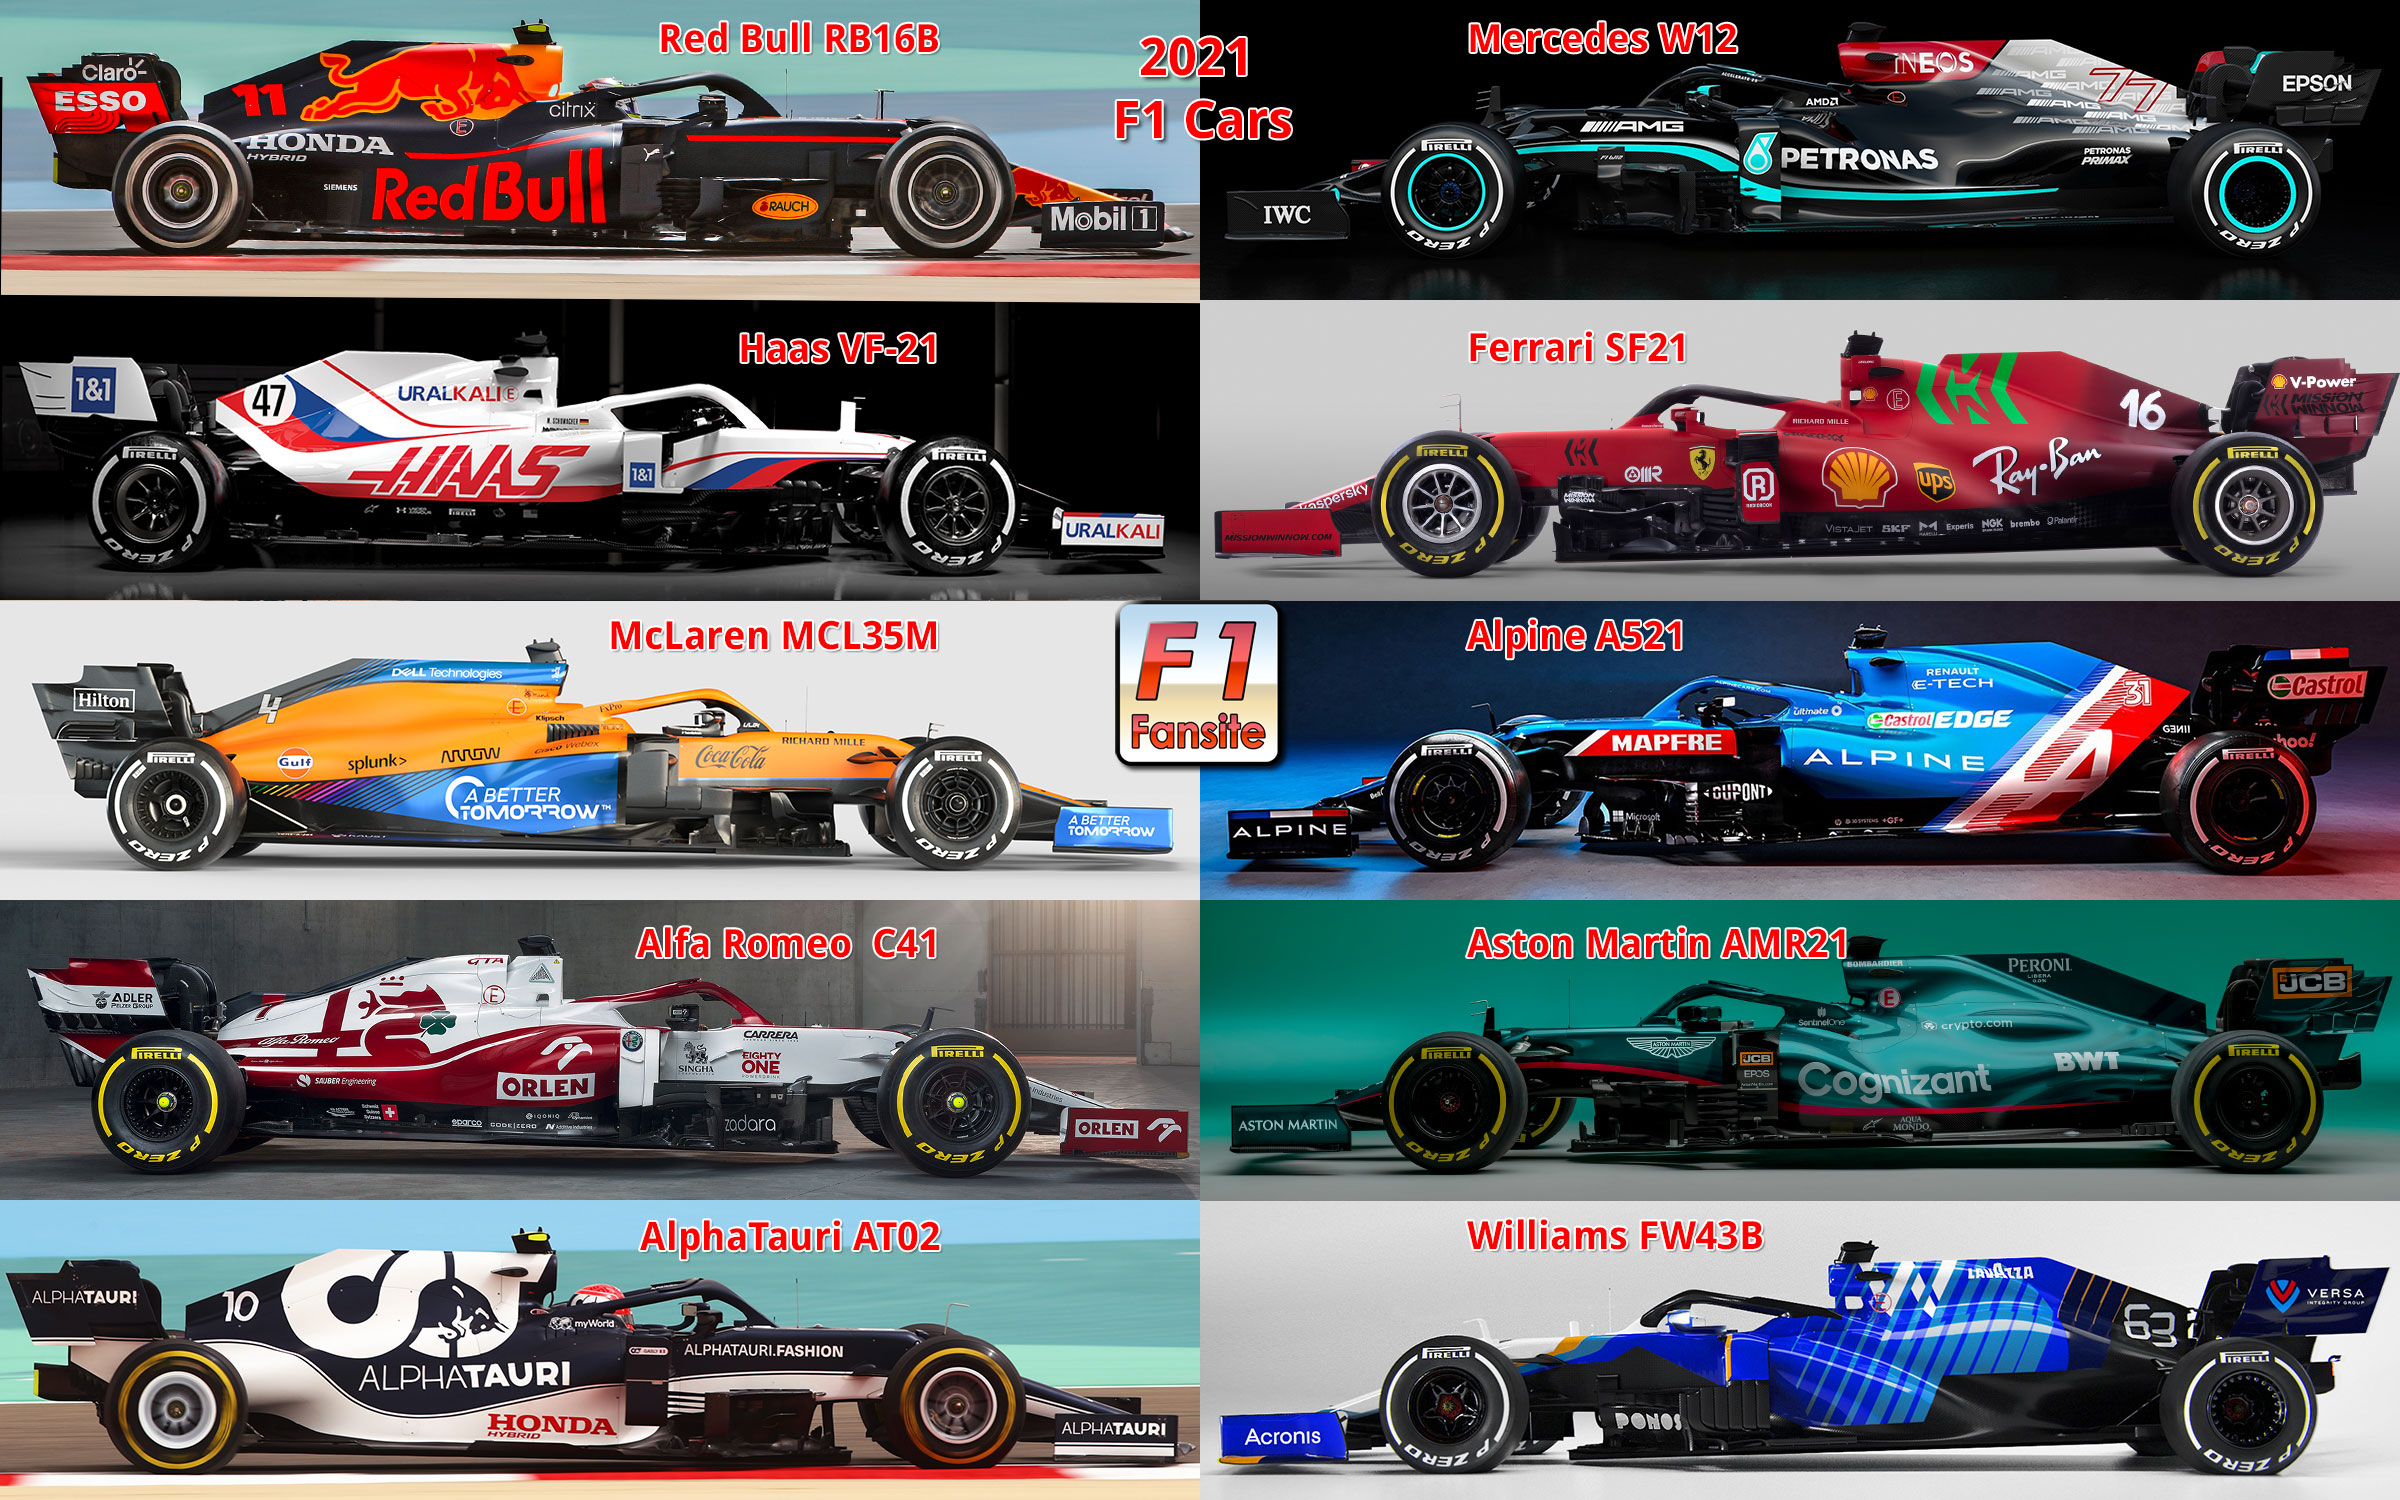 F1 Teams 2021 See All Constructors Drivers Cars Engines Info